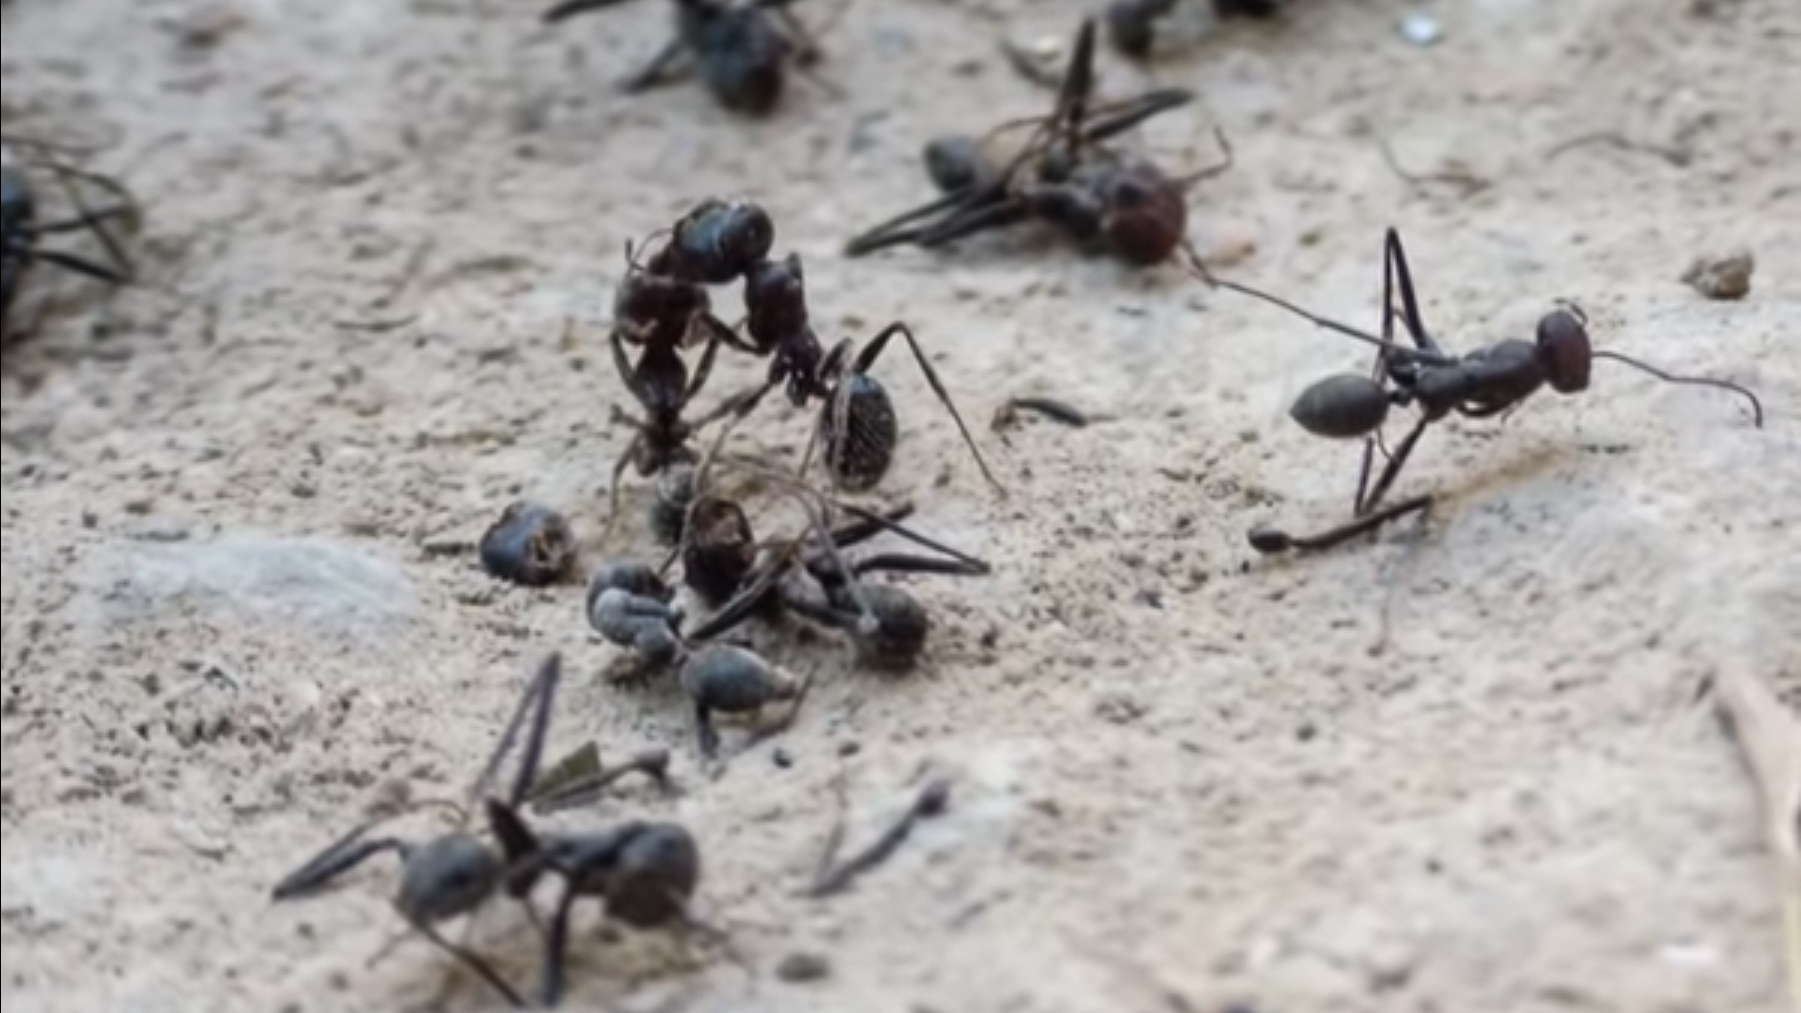 Tell me about movies about ants